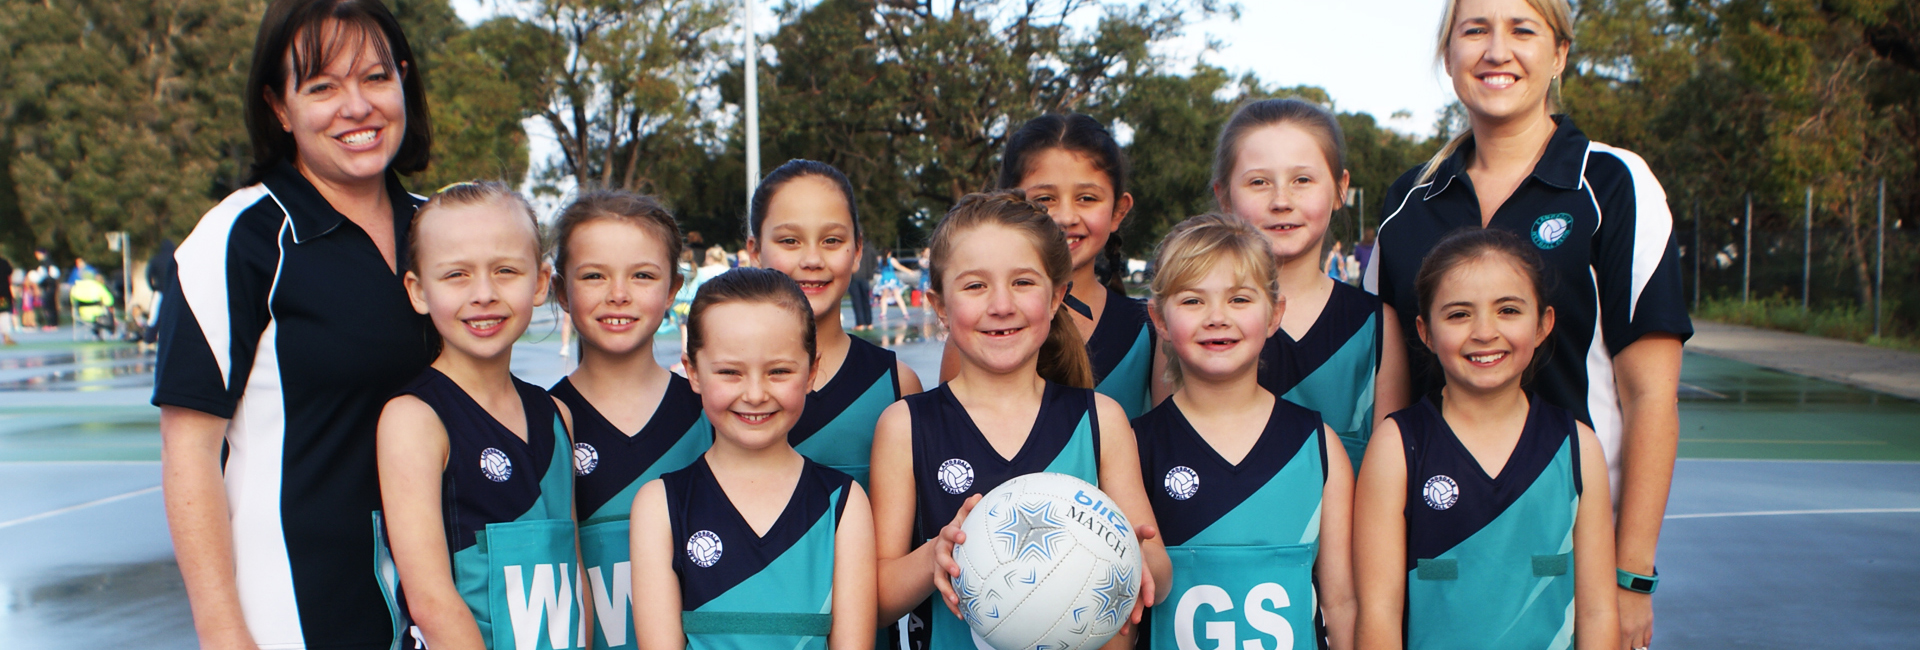 Landsdale Netball Club Net, Set, GO!